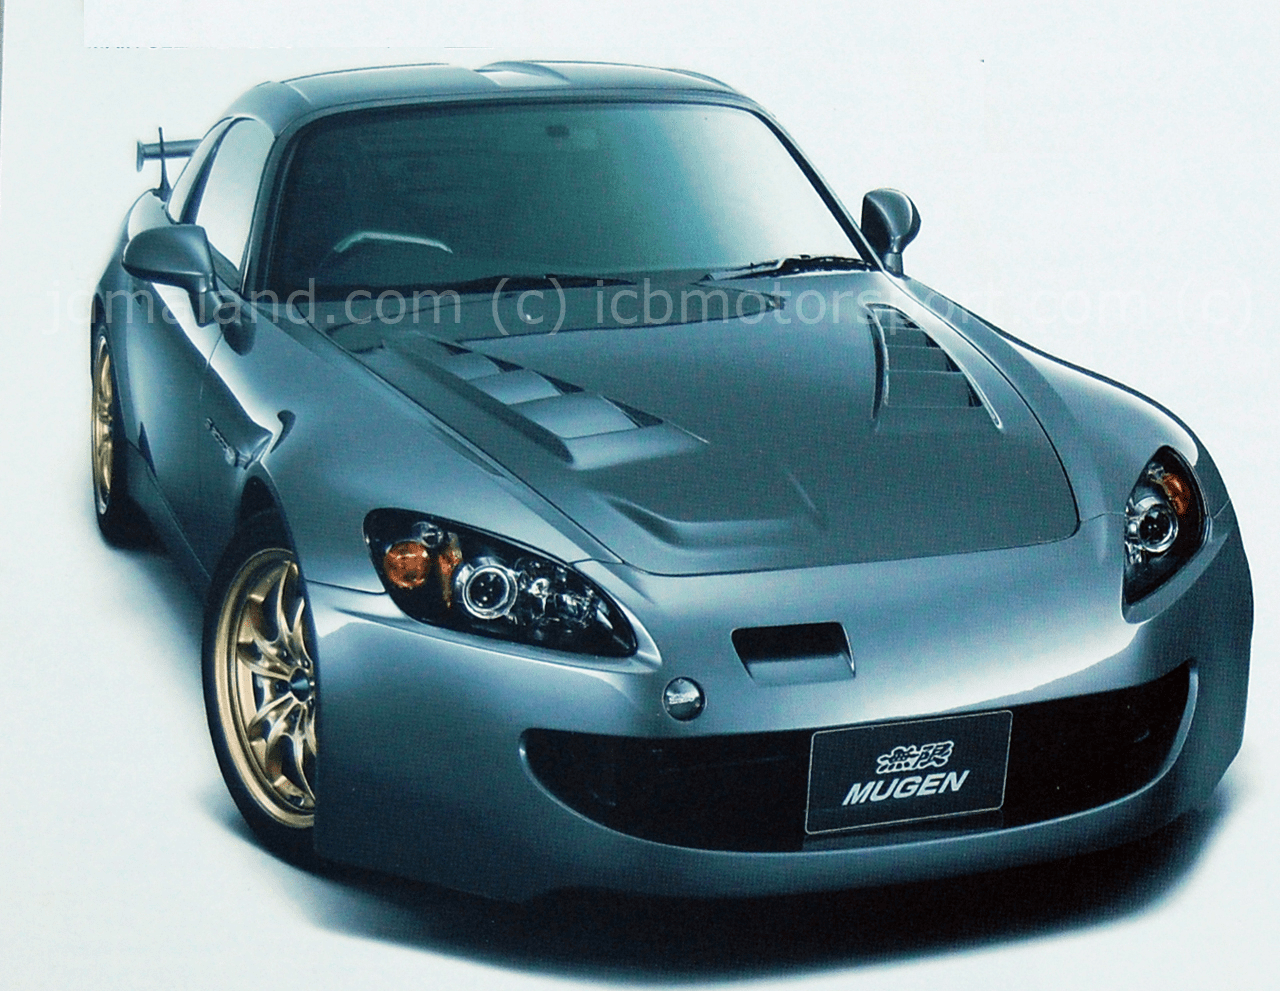 Mugen Aero S2000 SS Aero Front Bumper & Under Panel Kit 62511-XGS-K0S0